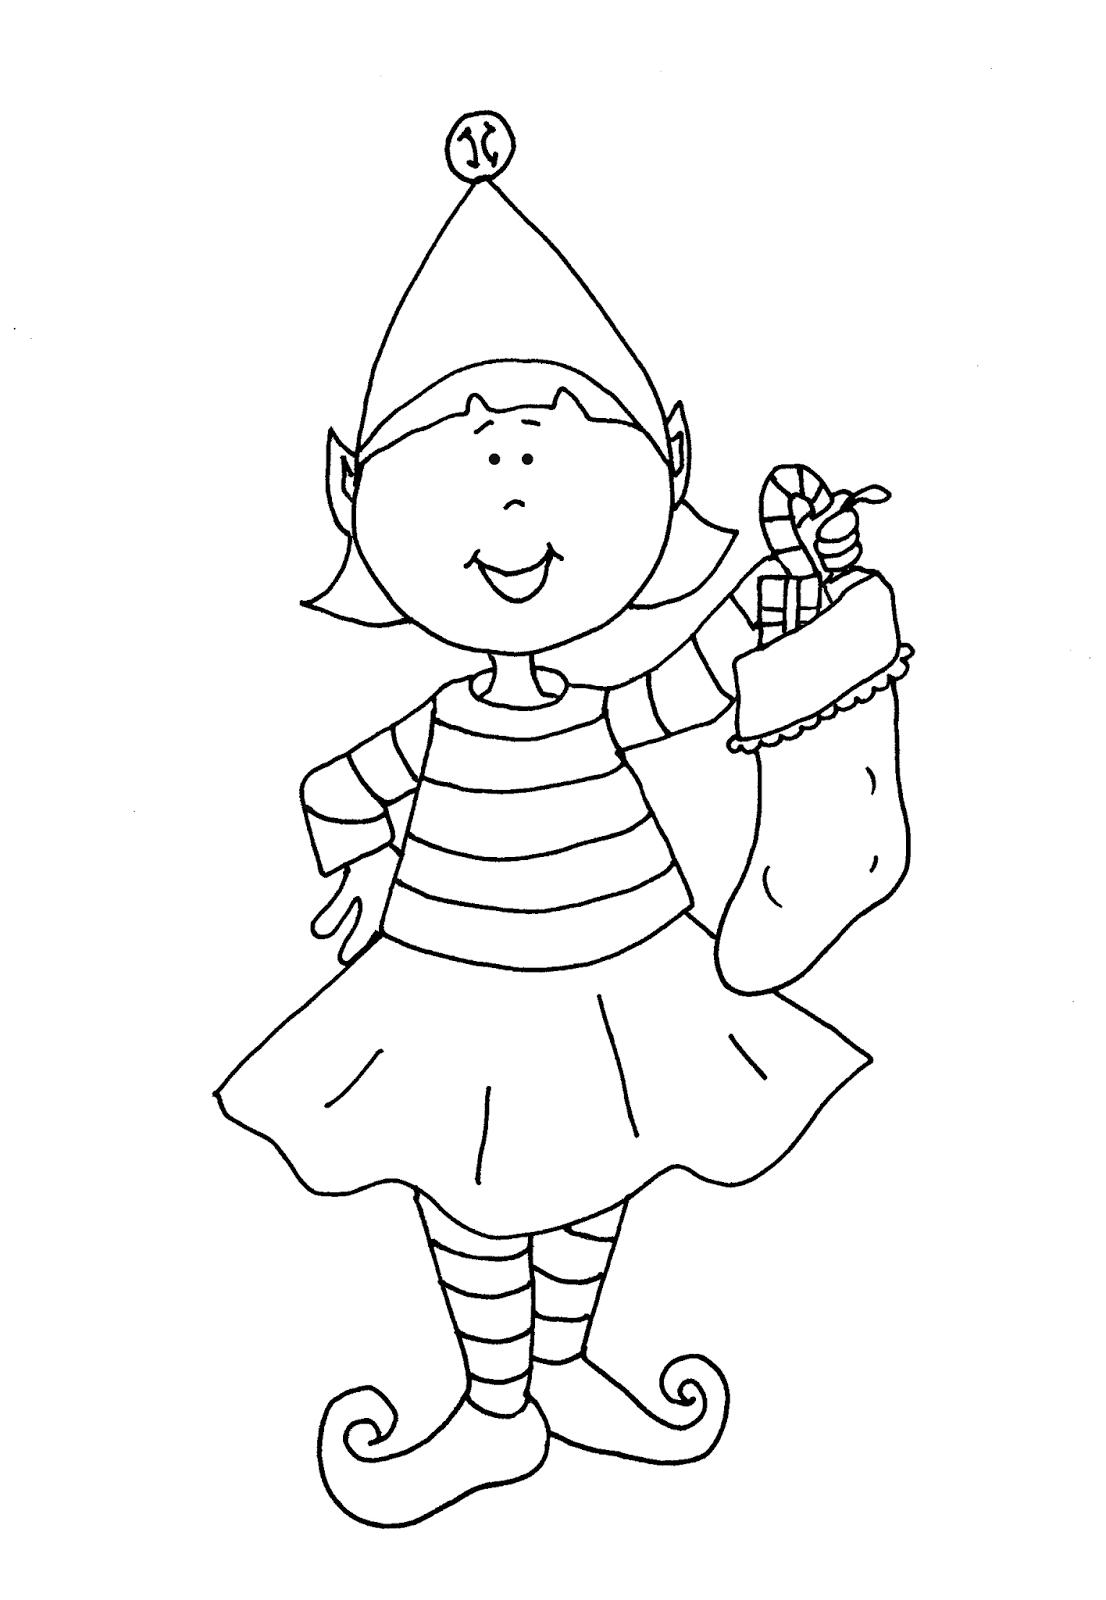 coloring pages elves elf line drawing at getdrawings free download coloring pages elves